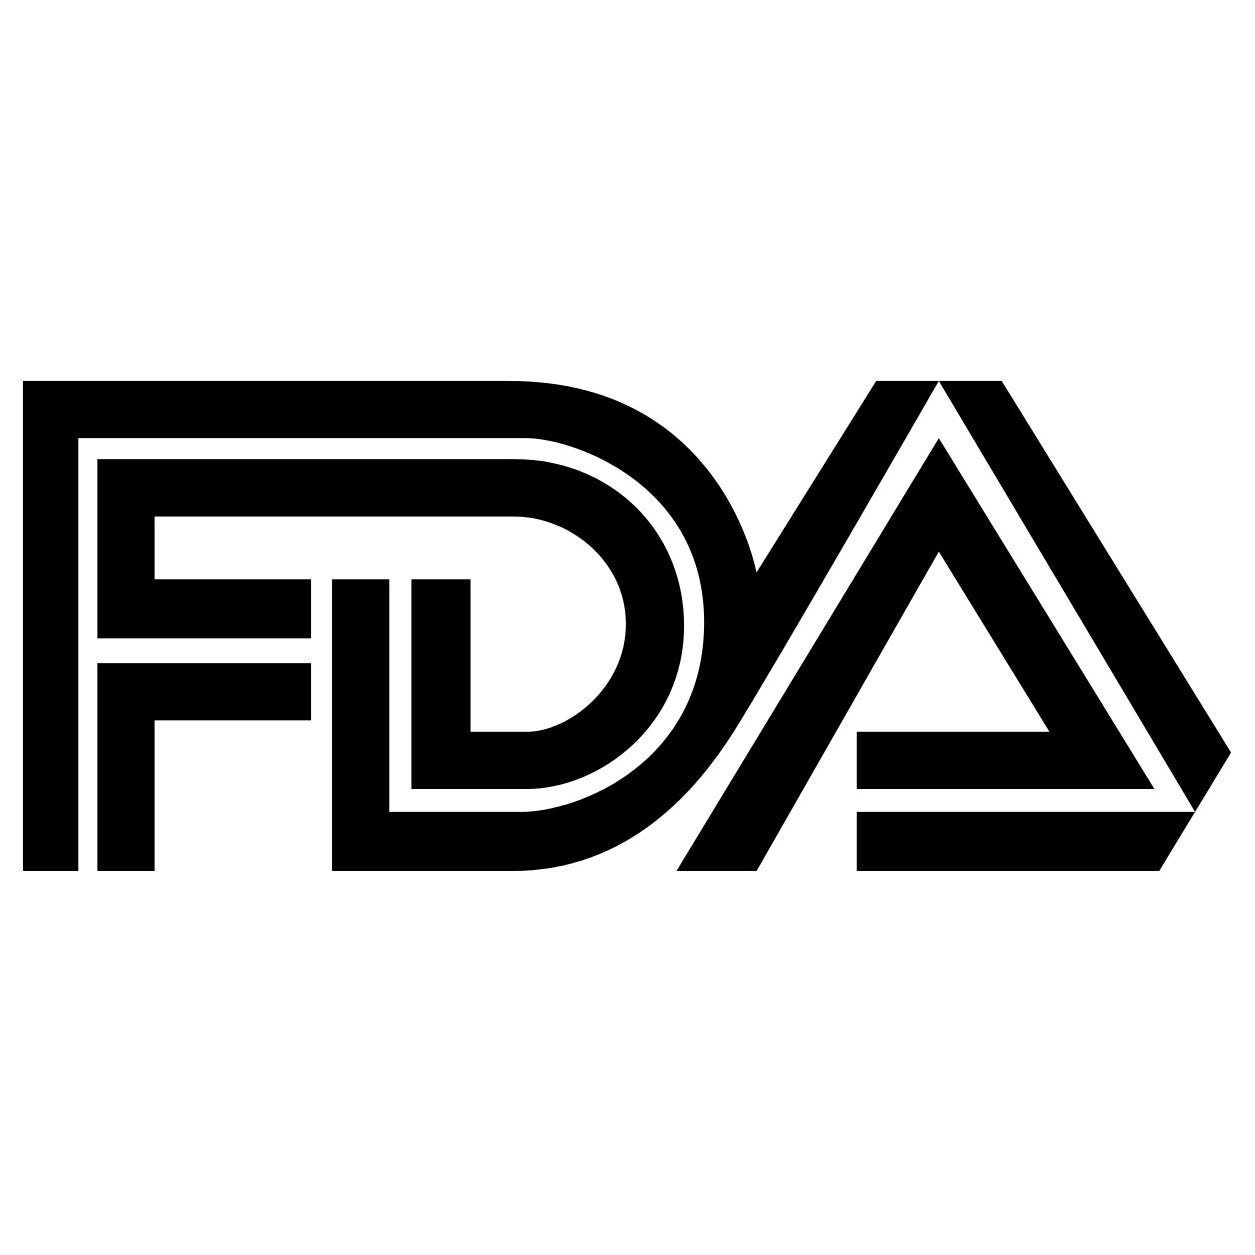 Blood pressure drug recall: FDA warns of potentially 'life-threatening' labeling mixup